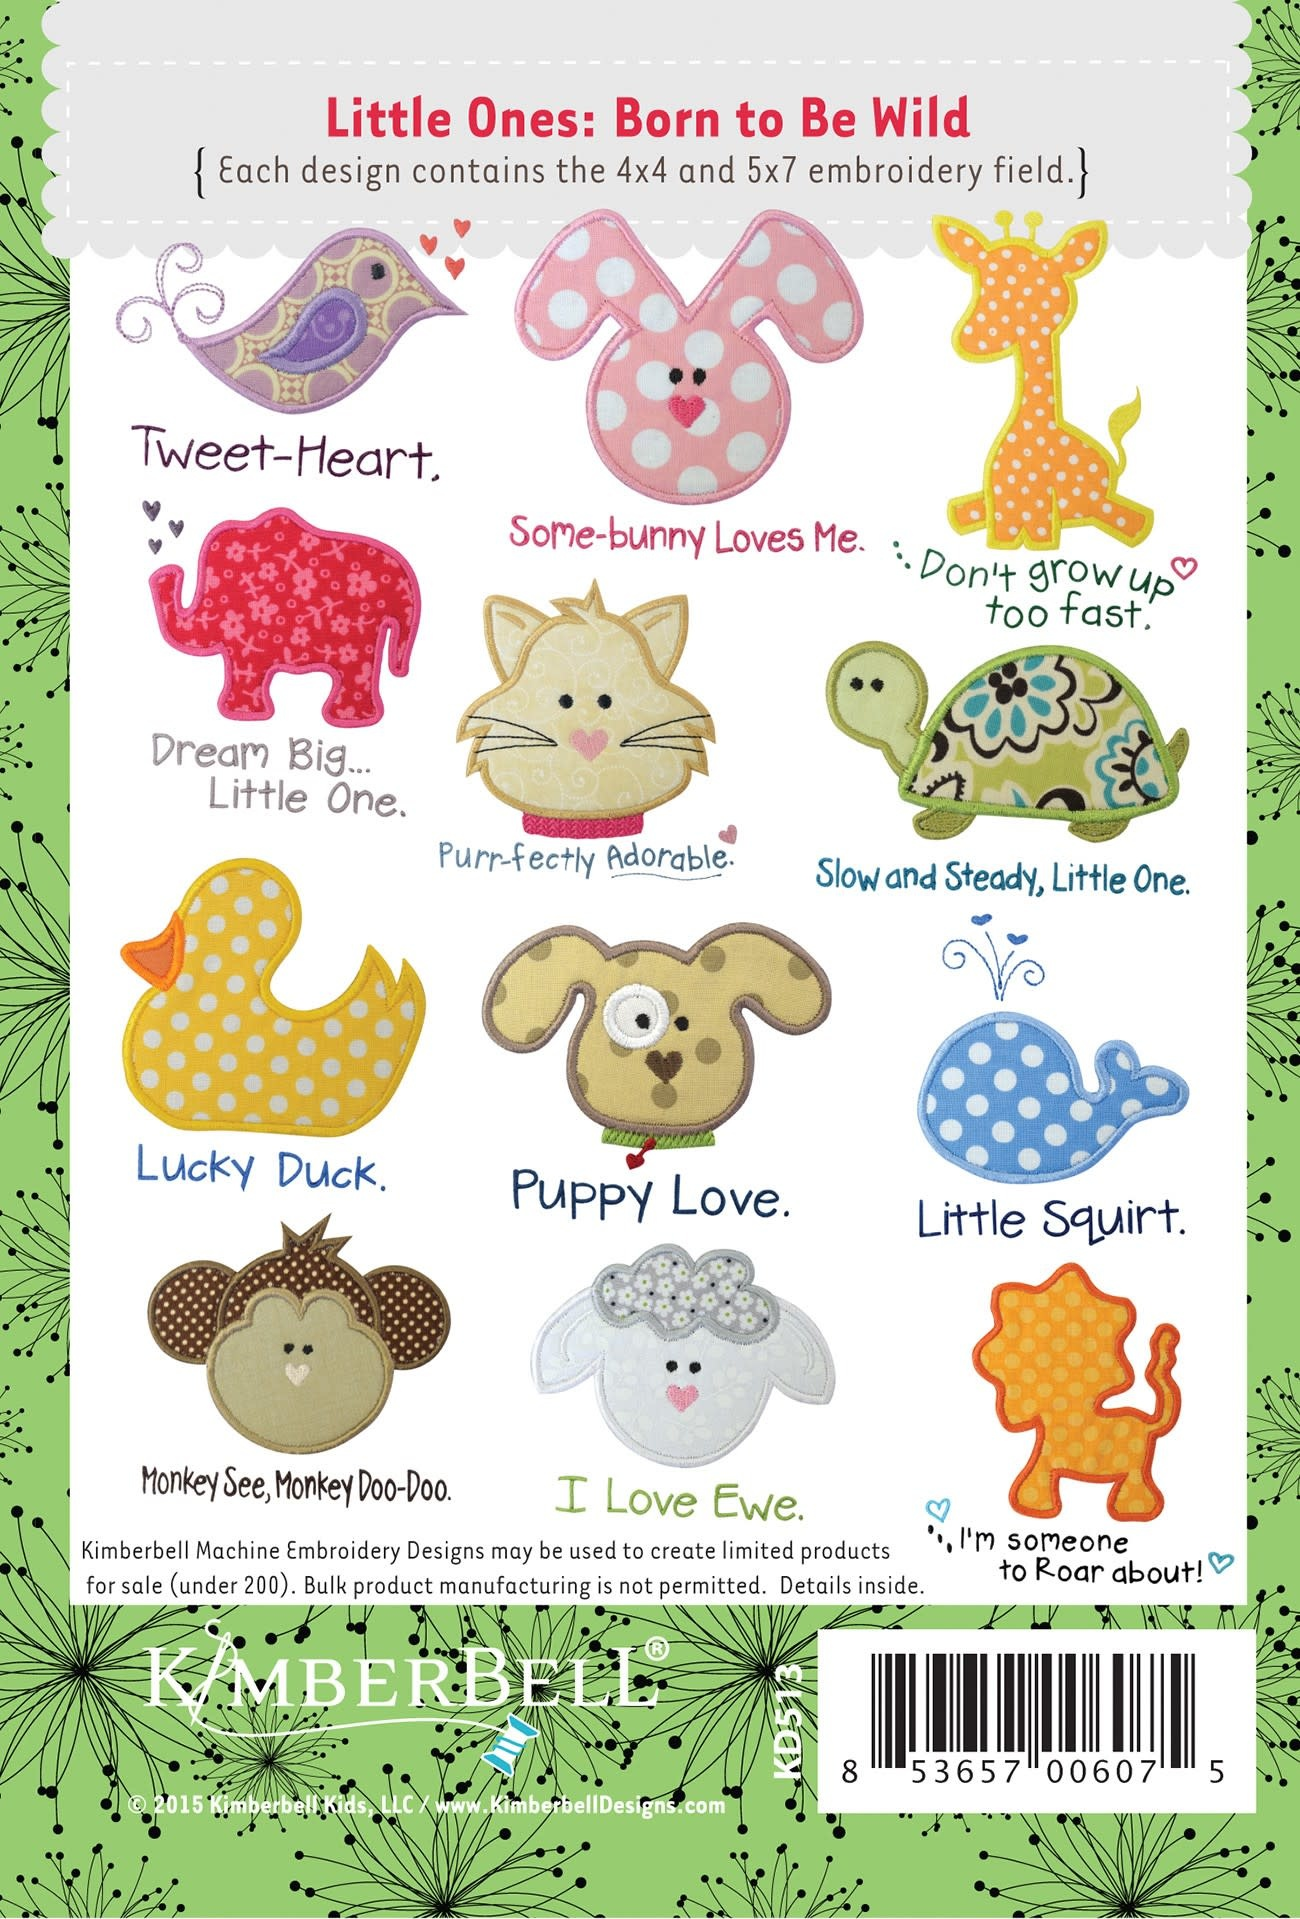 KIMBERBELL DESIGNS Kimberbell Little Ones, Volume 1: Born to be Wild Embroidery Designs CD